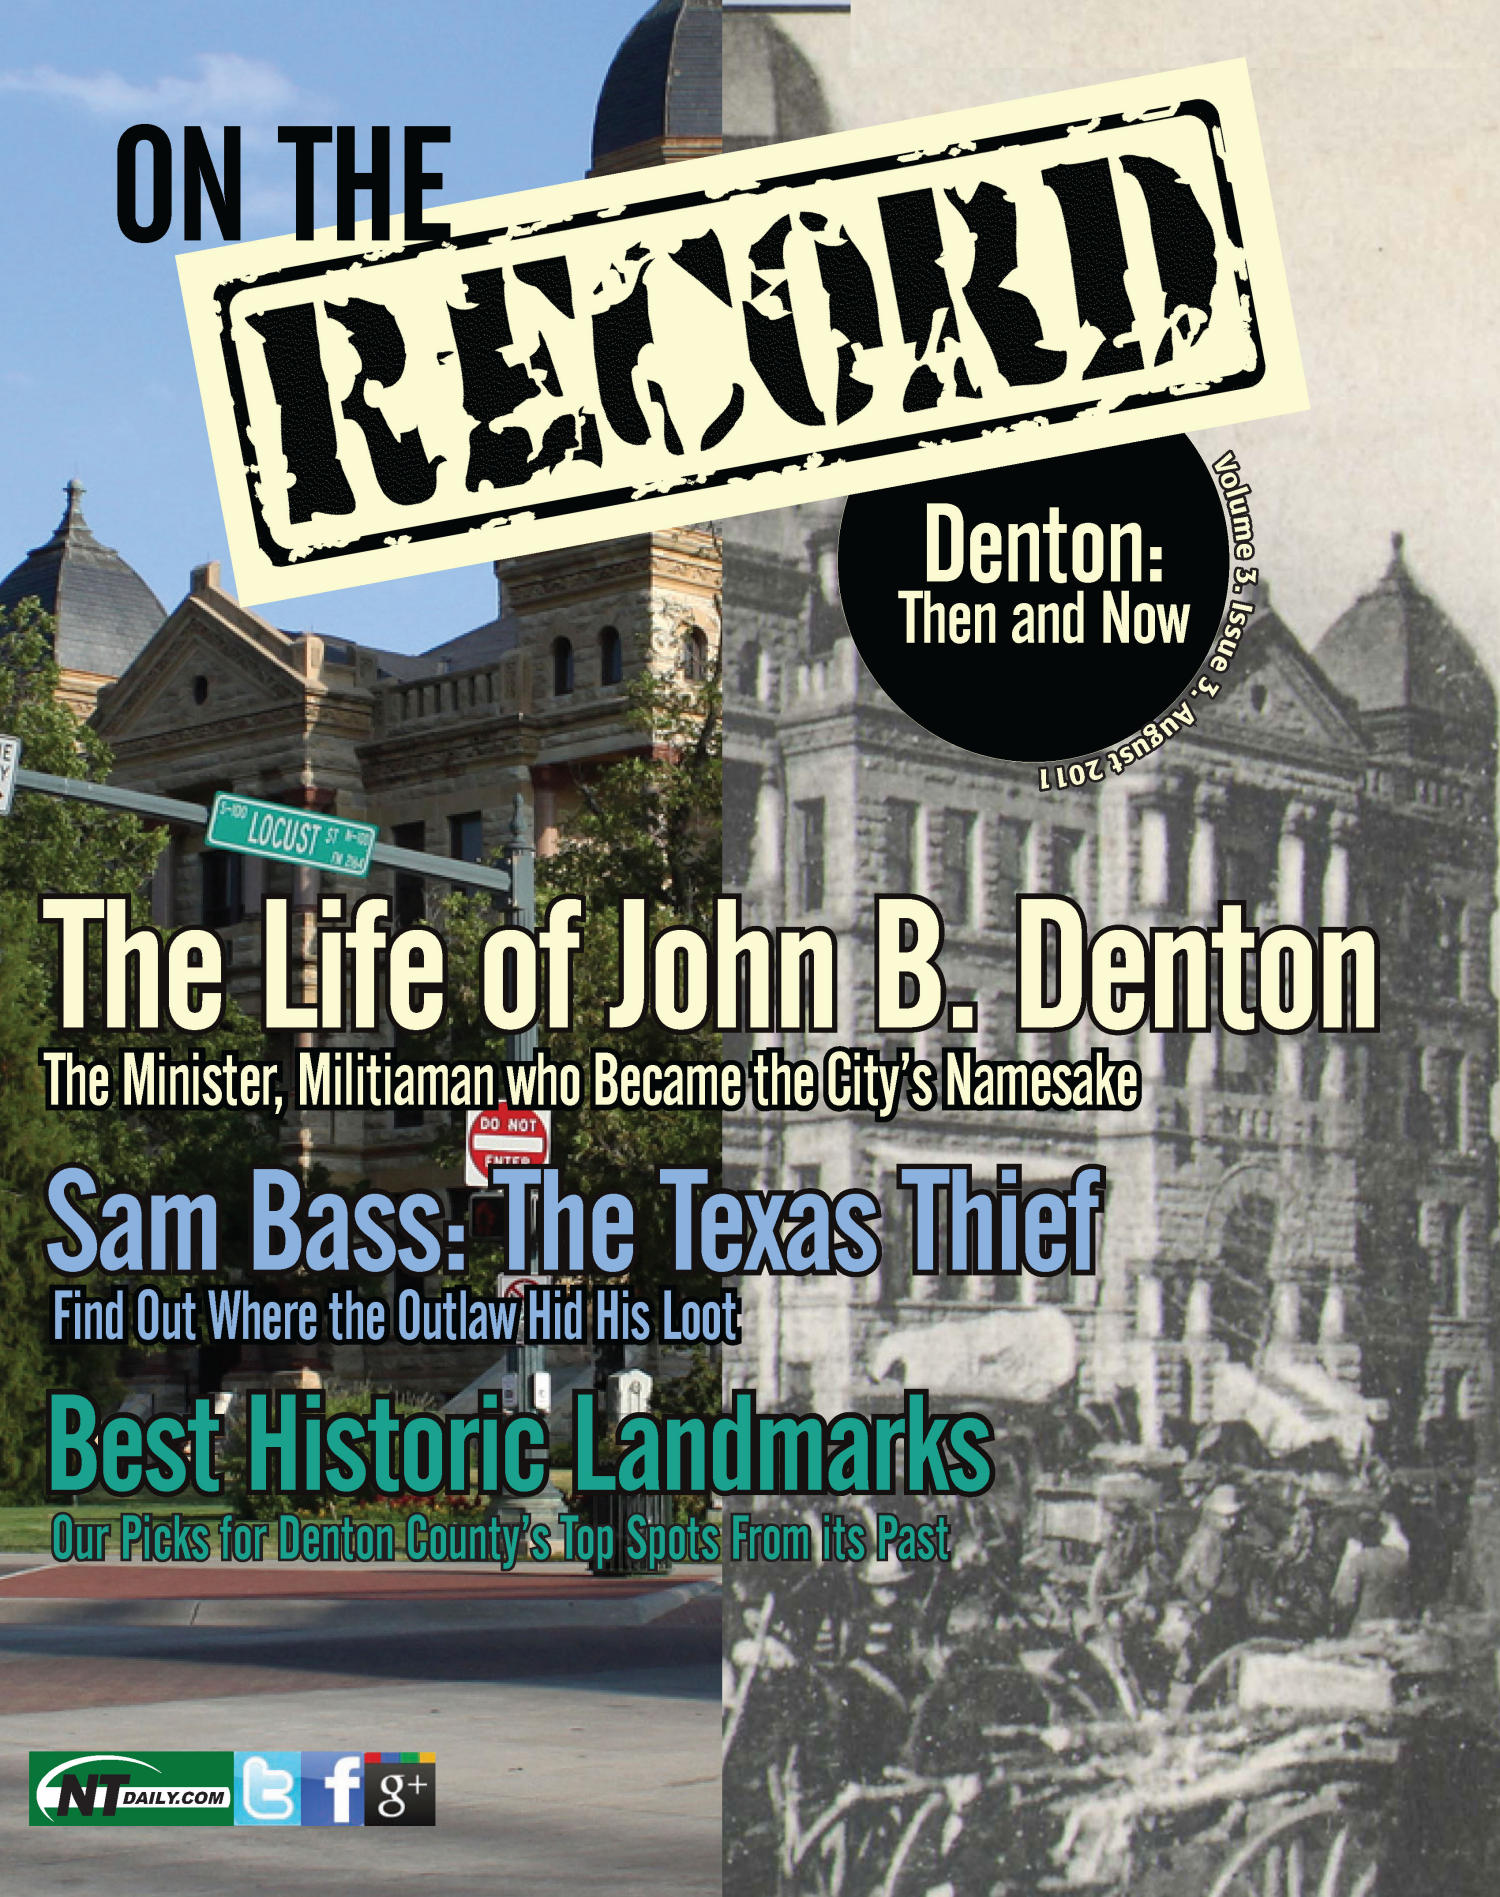 On The Record, Vol. 3, No. 3, Ed. 1 Friday, August 12, 2011                                                                                                      [Sequence #]: 1 of 44